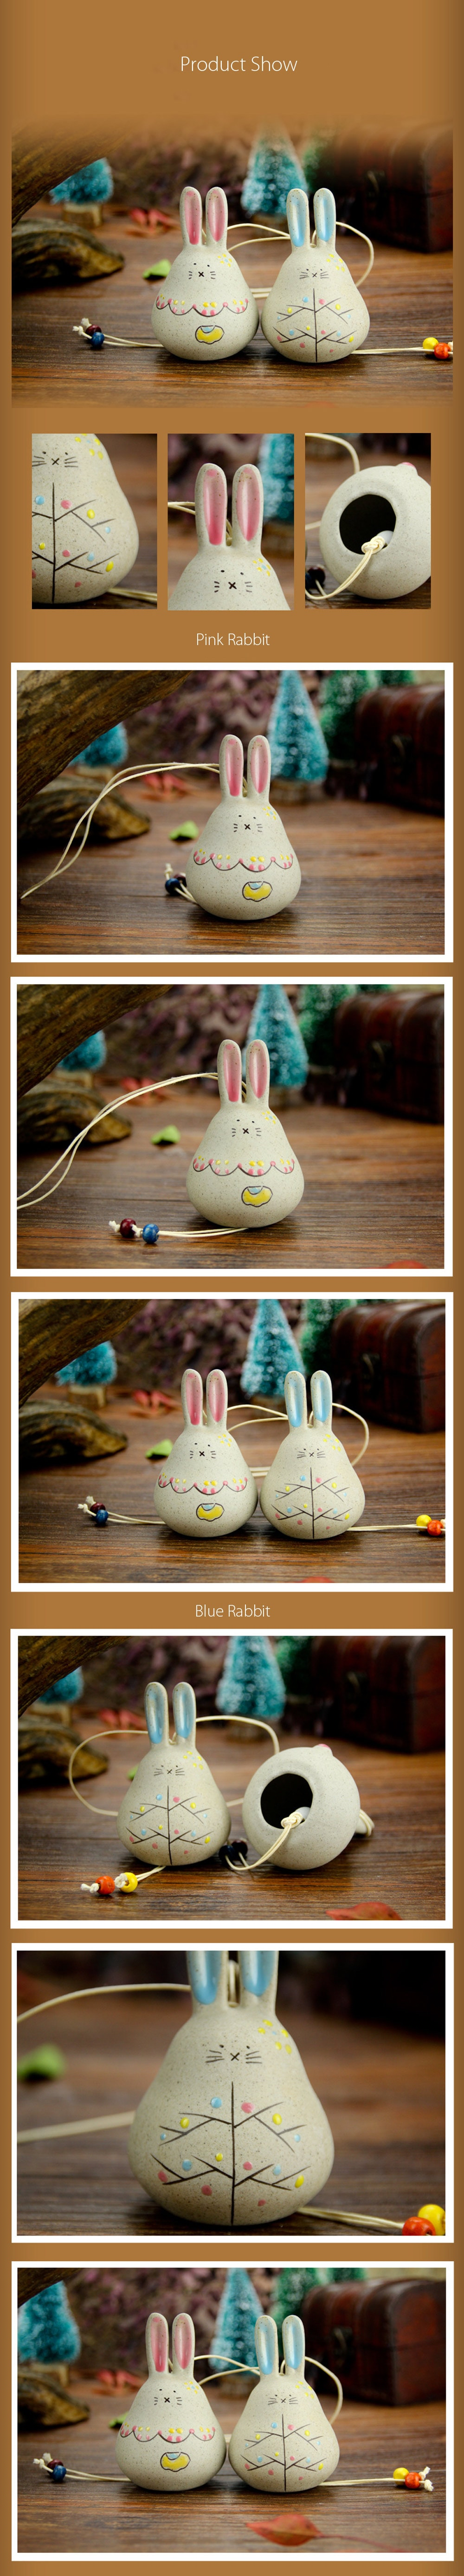 Fat Rabbit Ceramic Windbell For Your Home Decoration